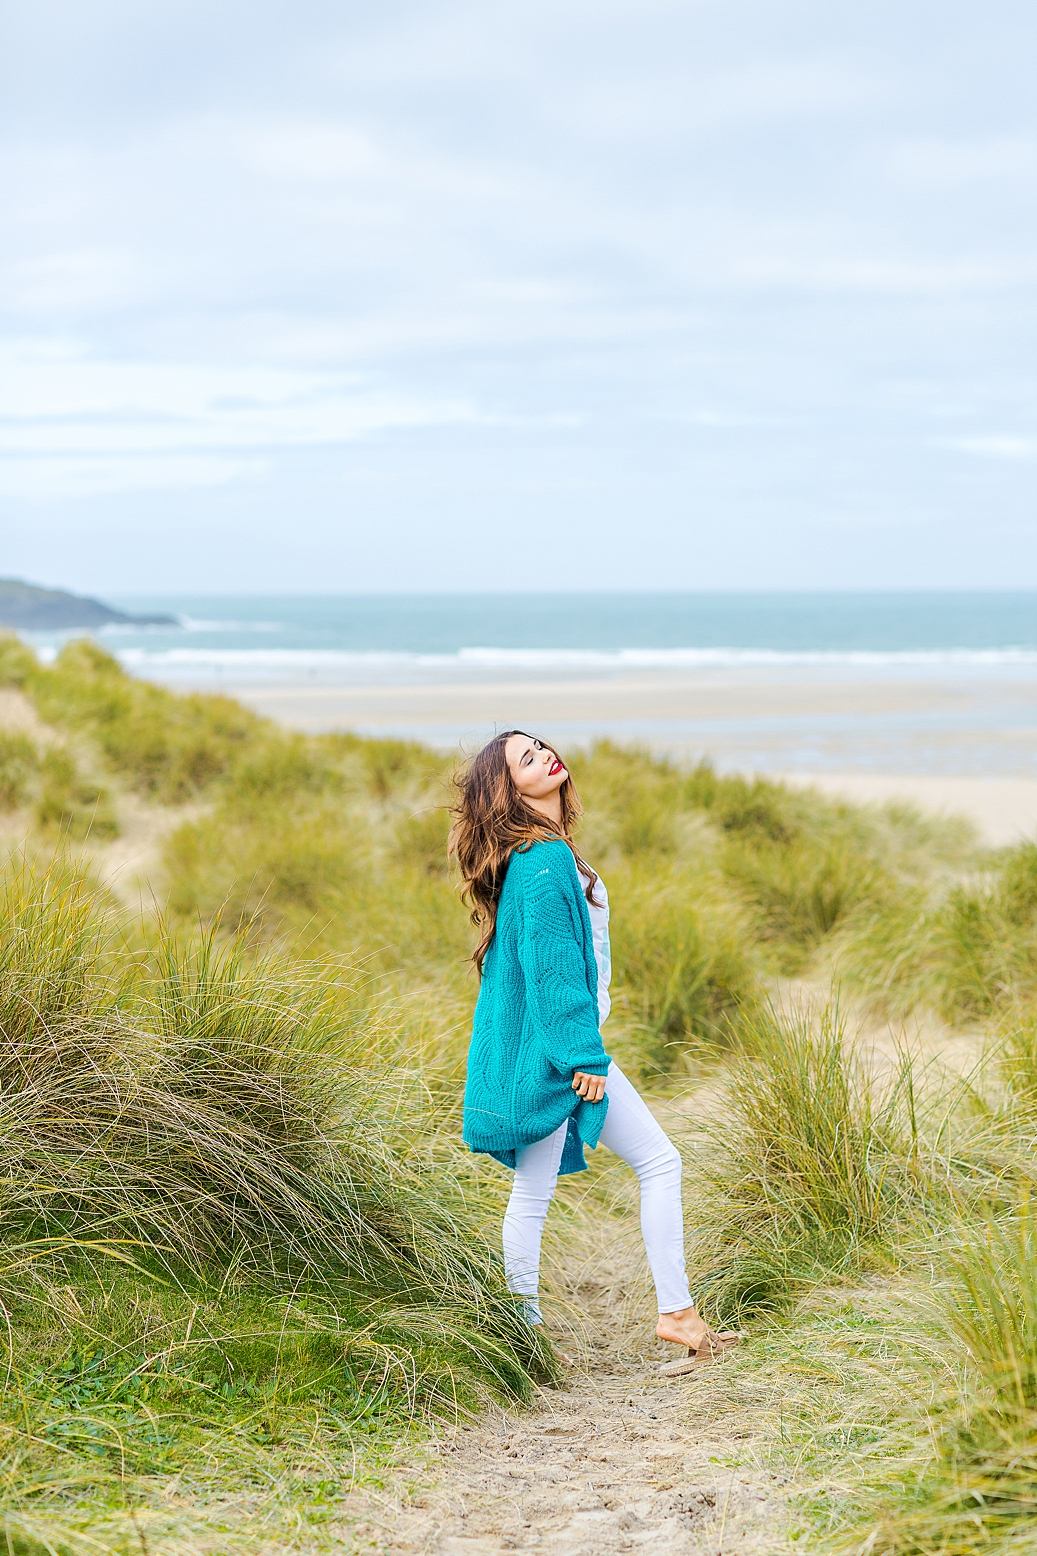 Colourful lifestyle photography in Cornwall by Marianne Taylor.